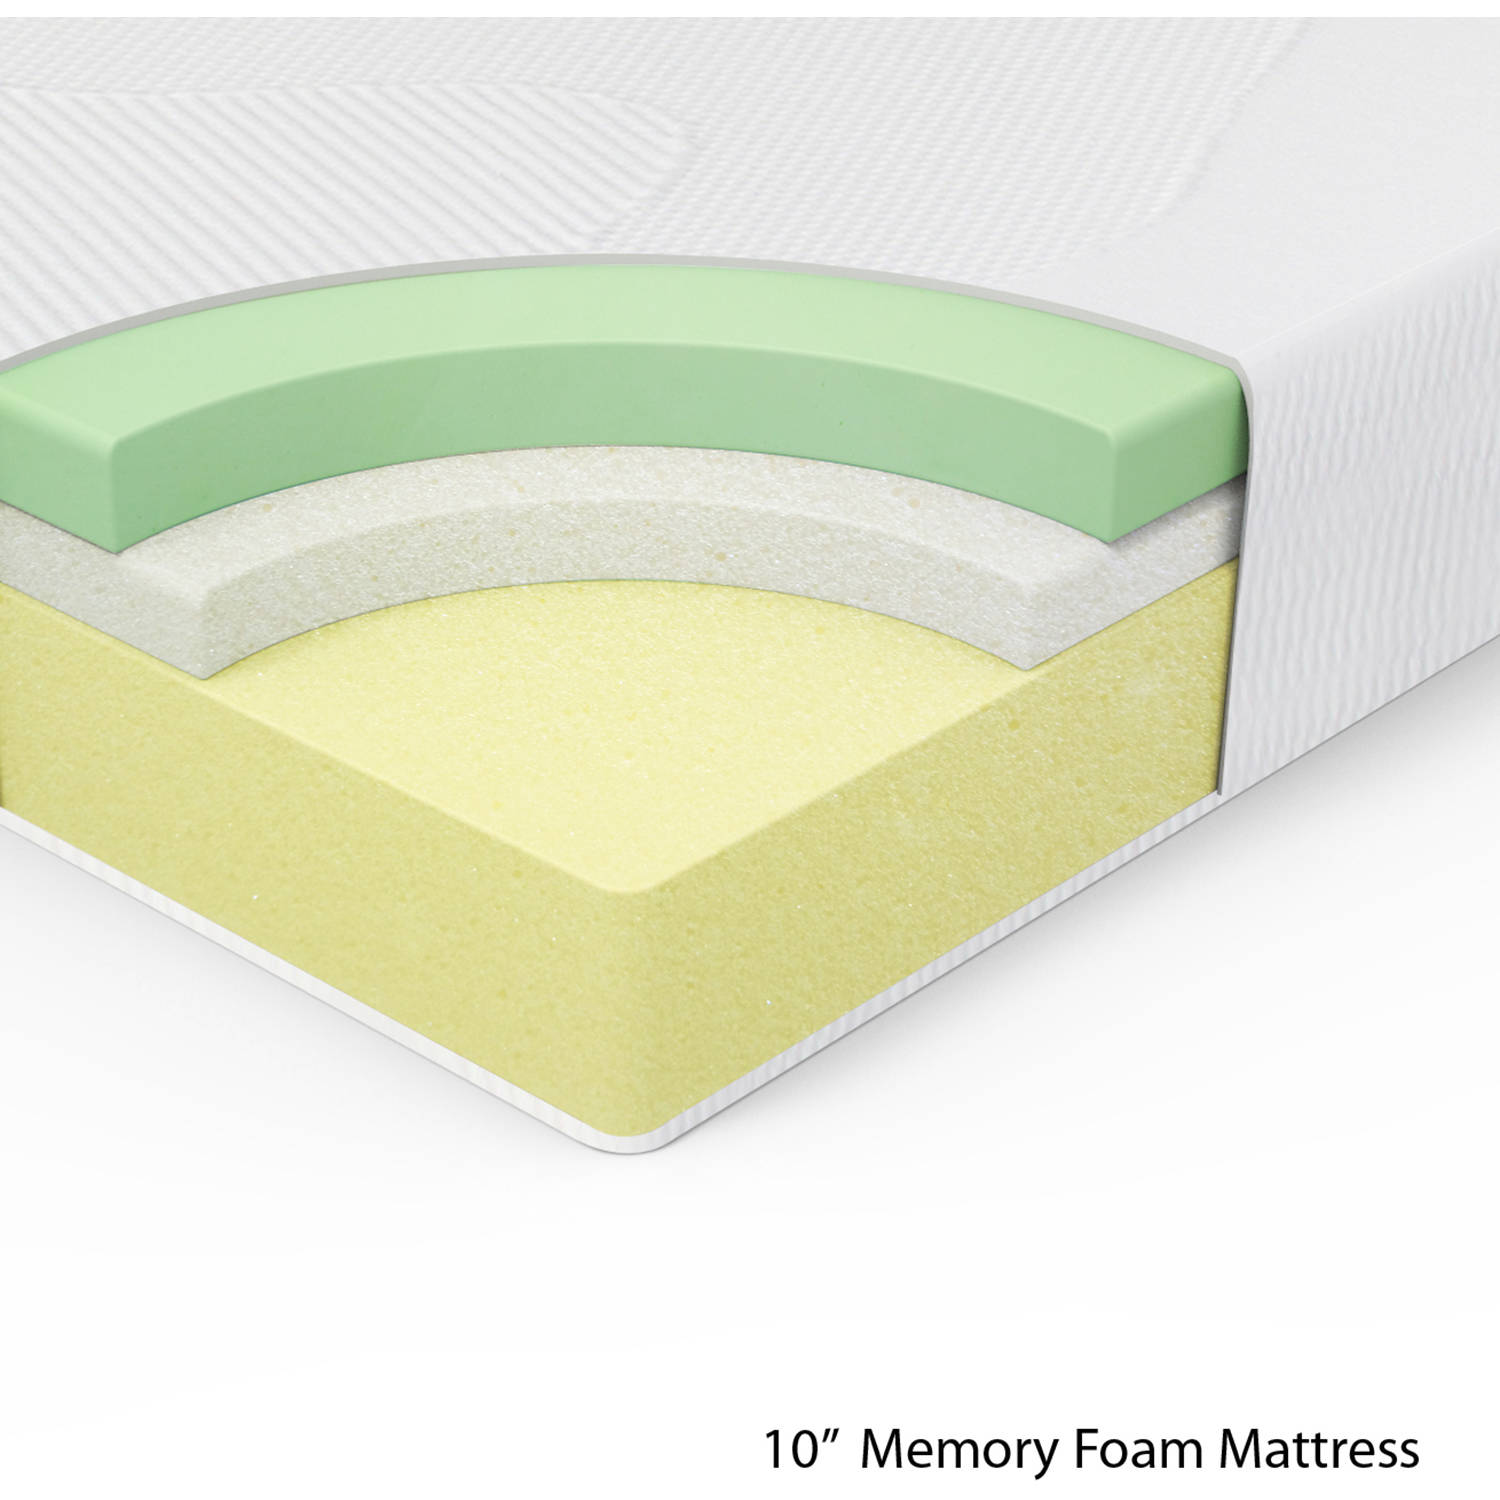 cheap hughes tj image mattress foam off memory